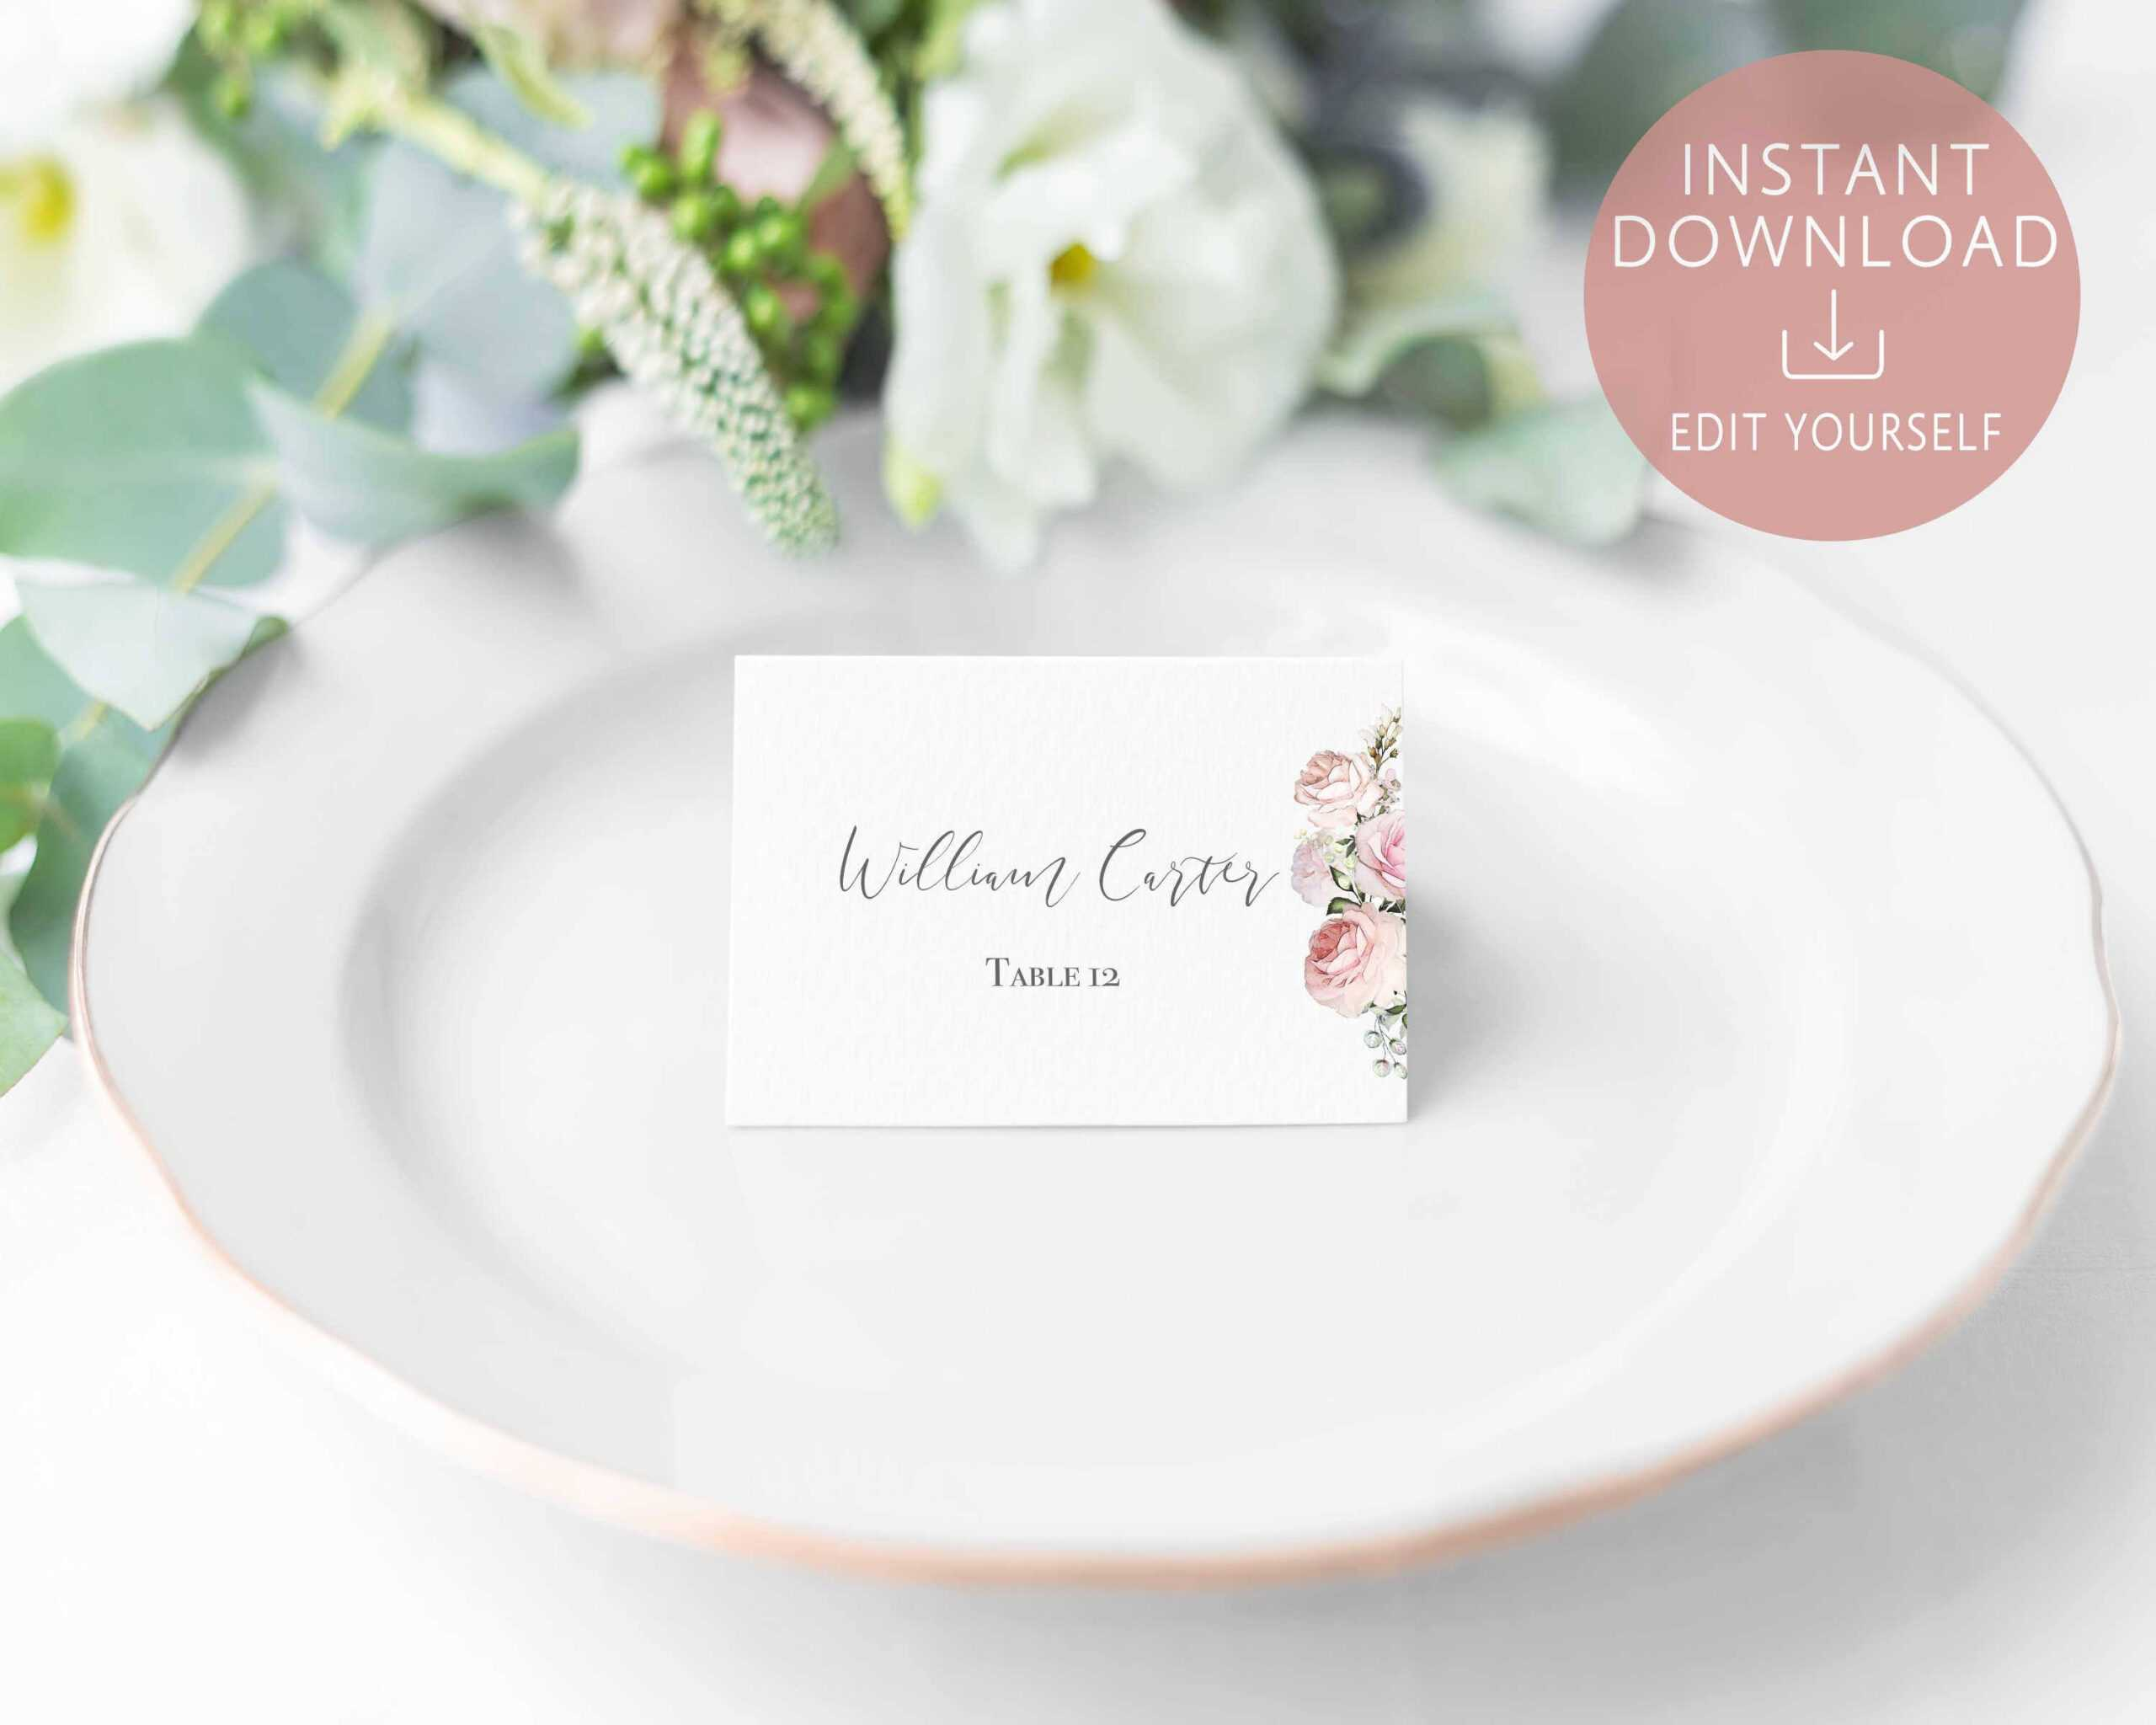 004 Template Ideas Name Place Cards Marvelous Card Free In Place Card Setting Template